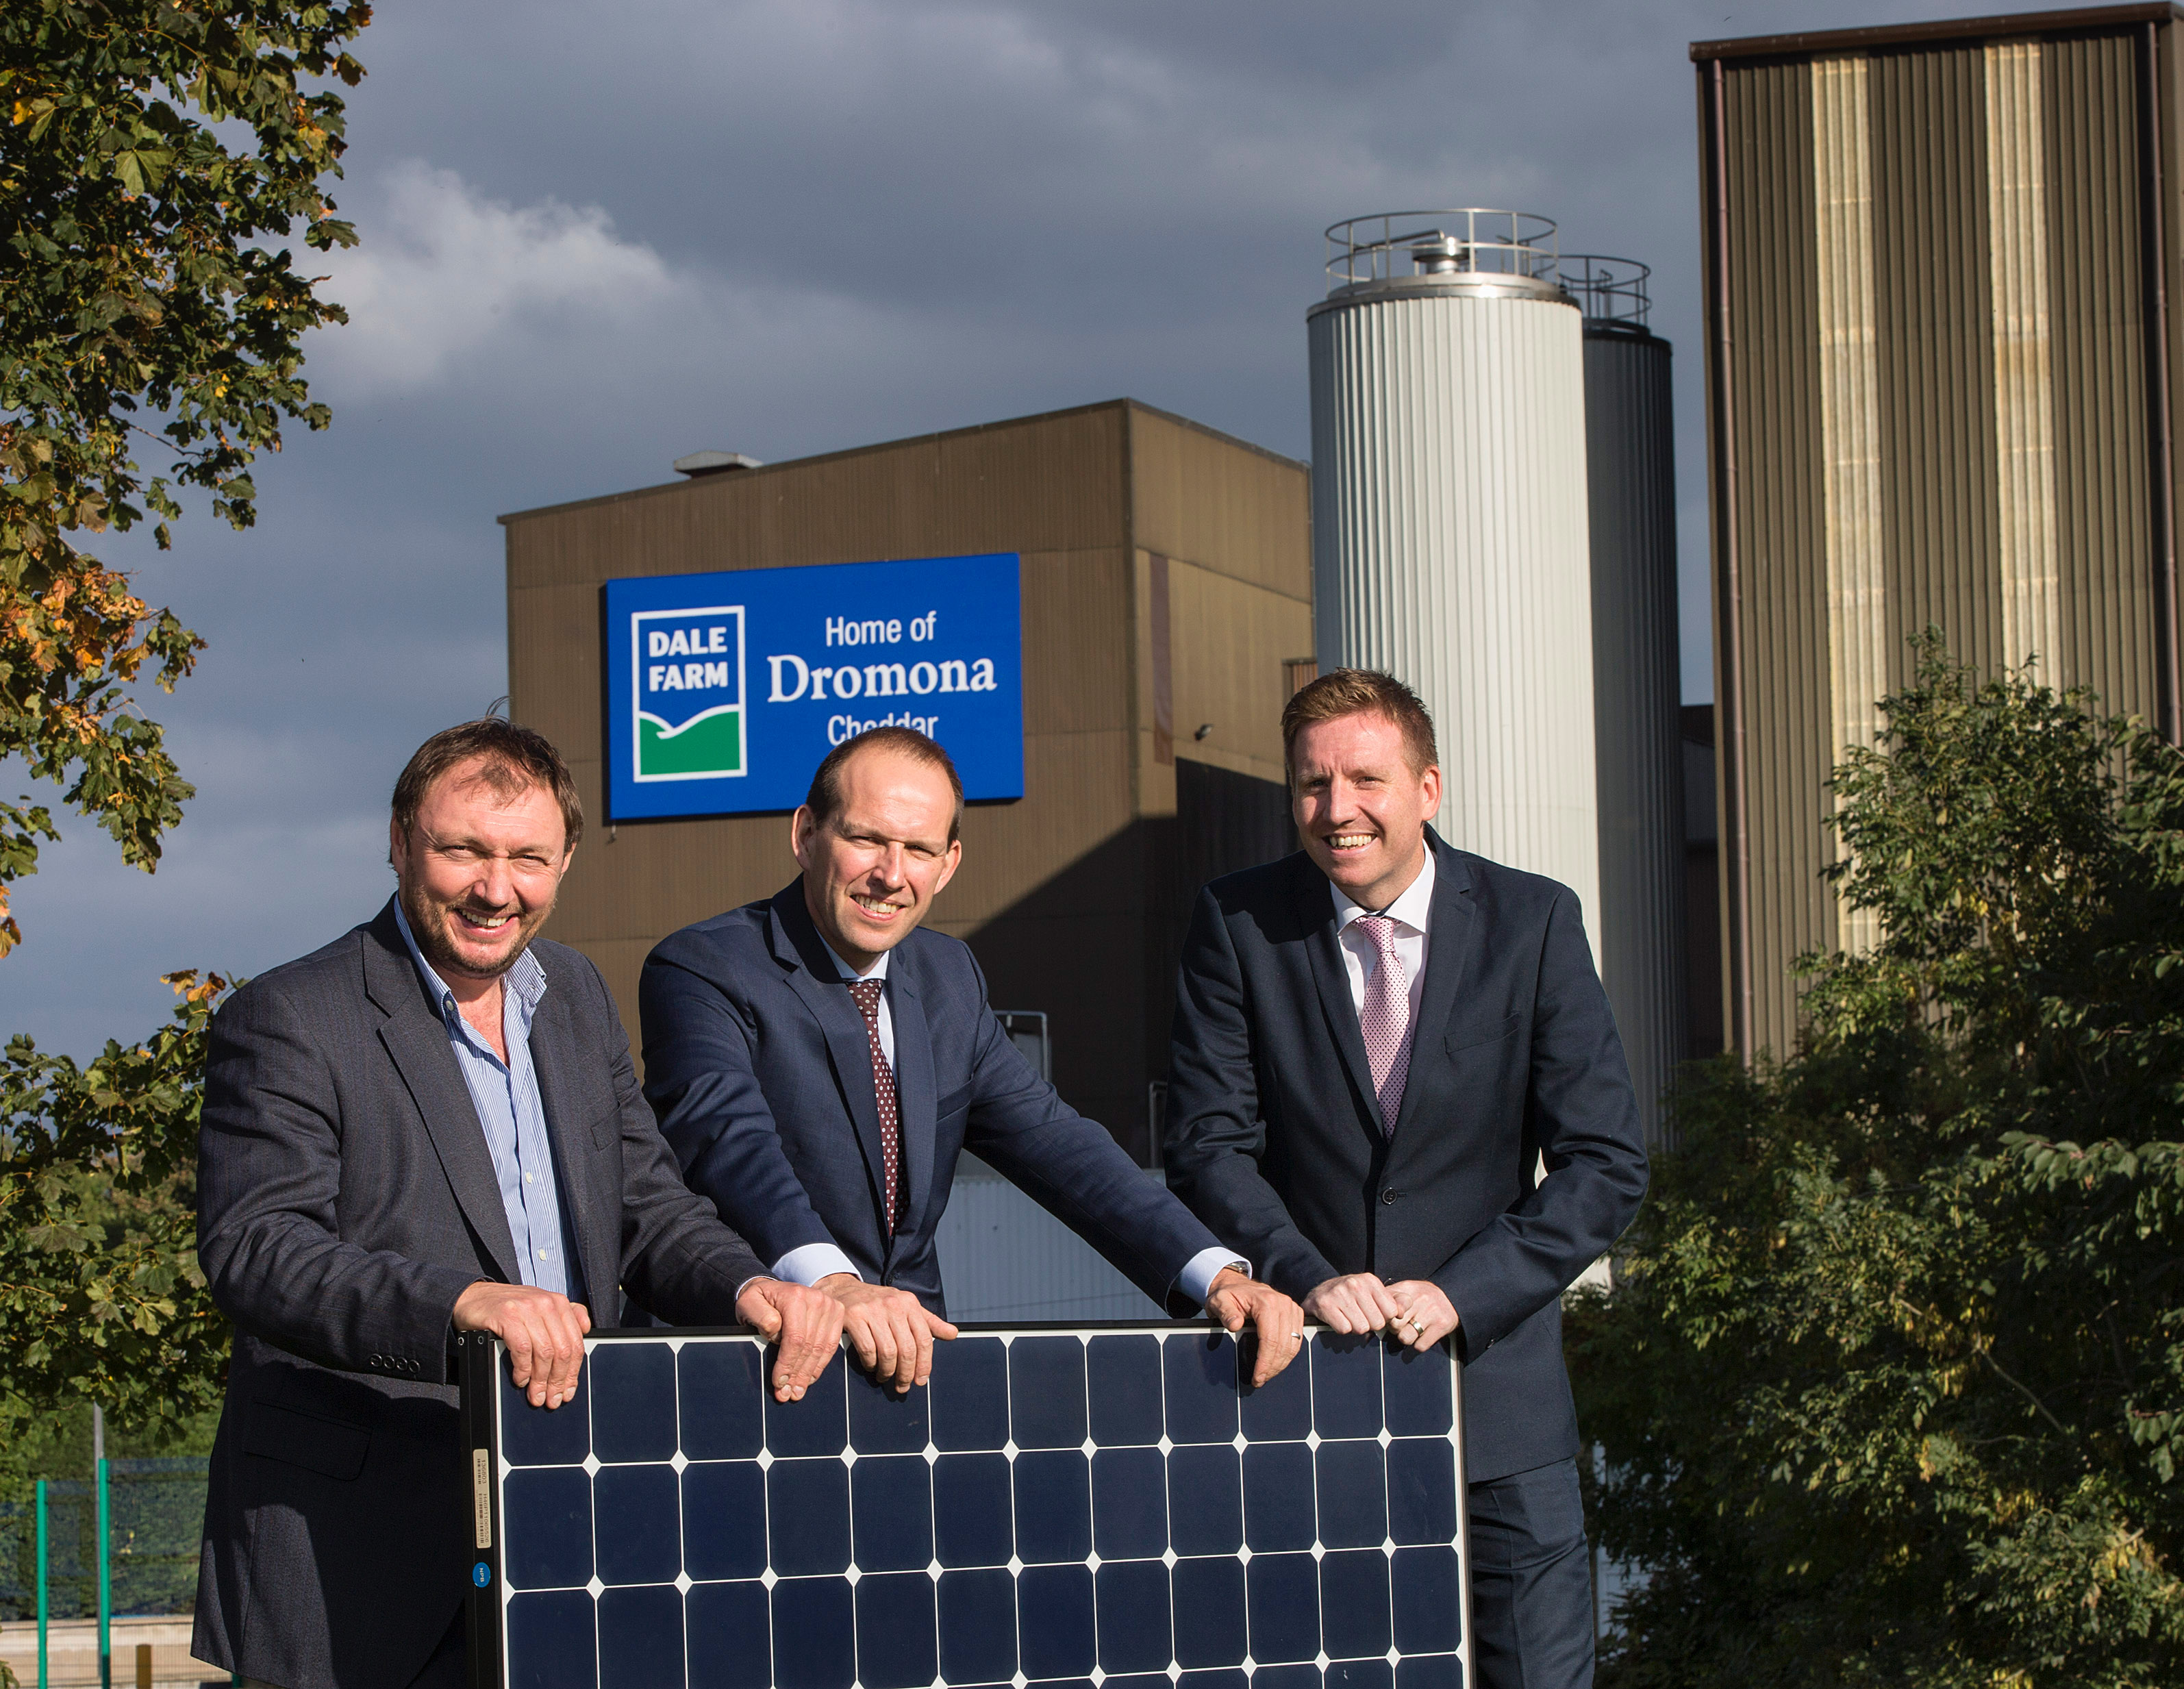 Dale Farm is soon to become a green energy leader in the dairy sector worldwide following the confirmation of a new build 'private wire' solar farm in Cookstown, County Tyrone. Pictured at the annoucement is Chief Executive of CES Energy, Tom Marren alongside Group Chief Executive of Dale Farm Nick Whelan and Dale Farm Group Operations Director, Chris McAlinden. - Ends - Photos: Brian Morrison